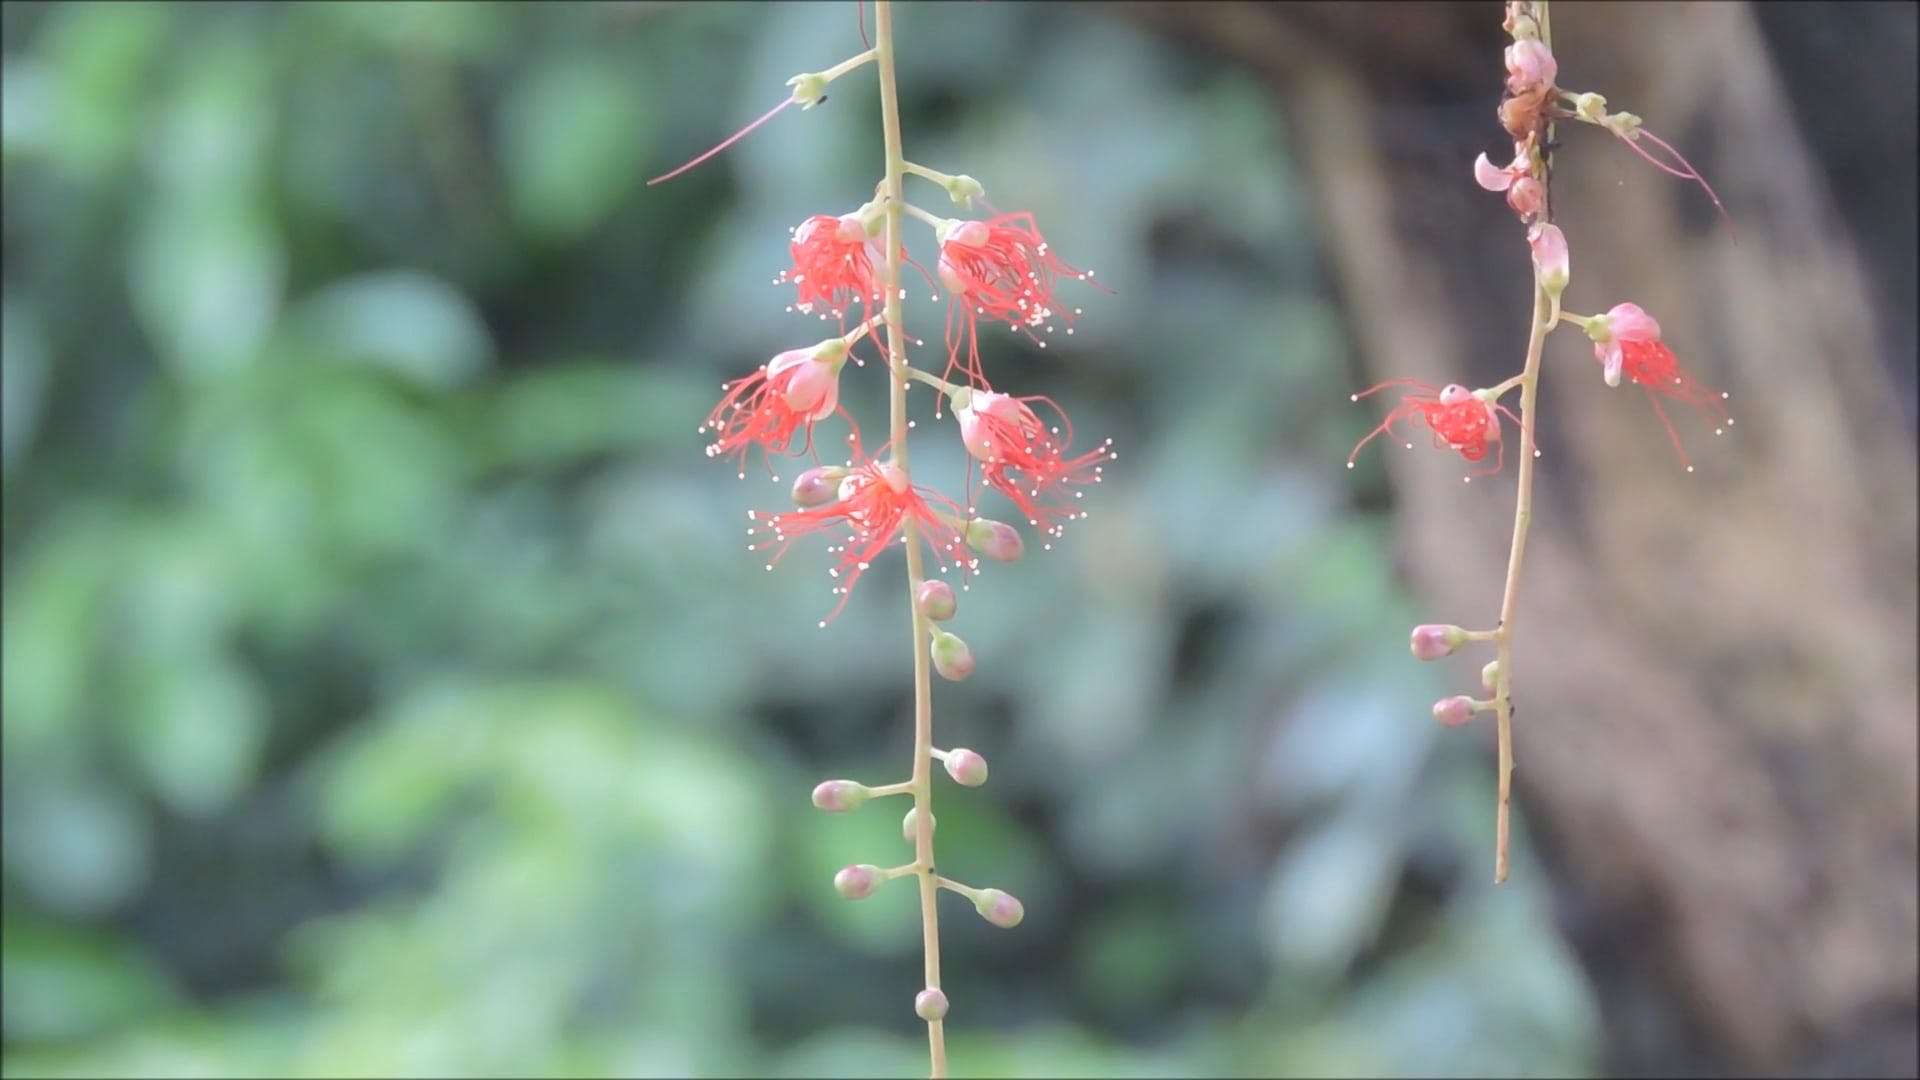 Time Lapse Video Of A Flower In Bloom